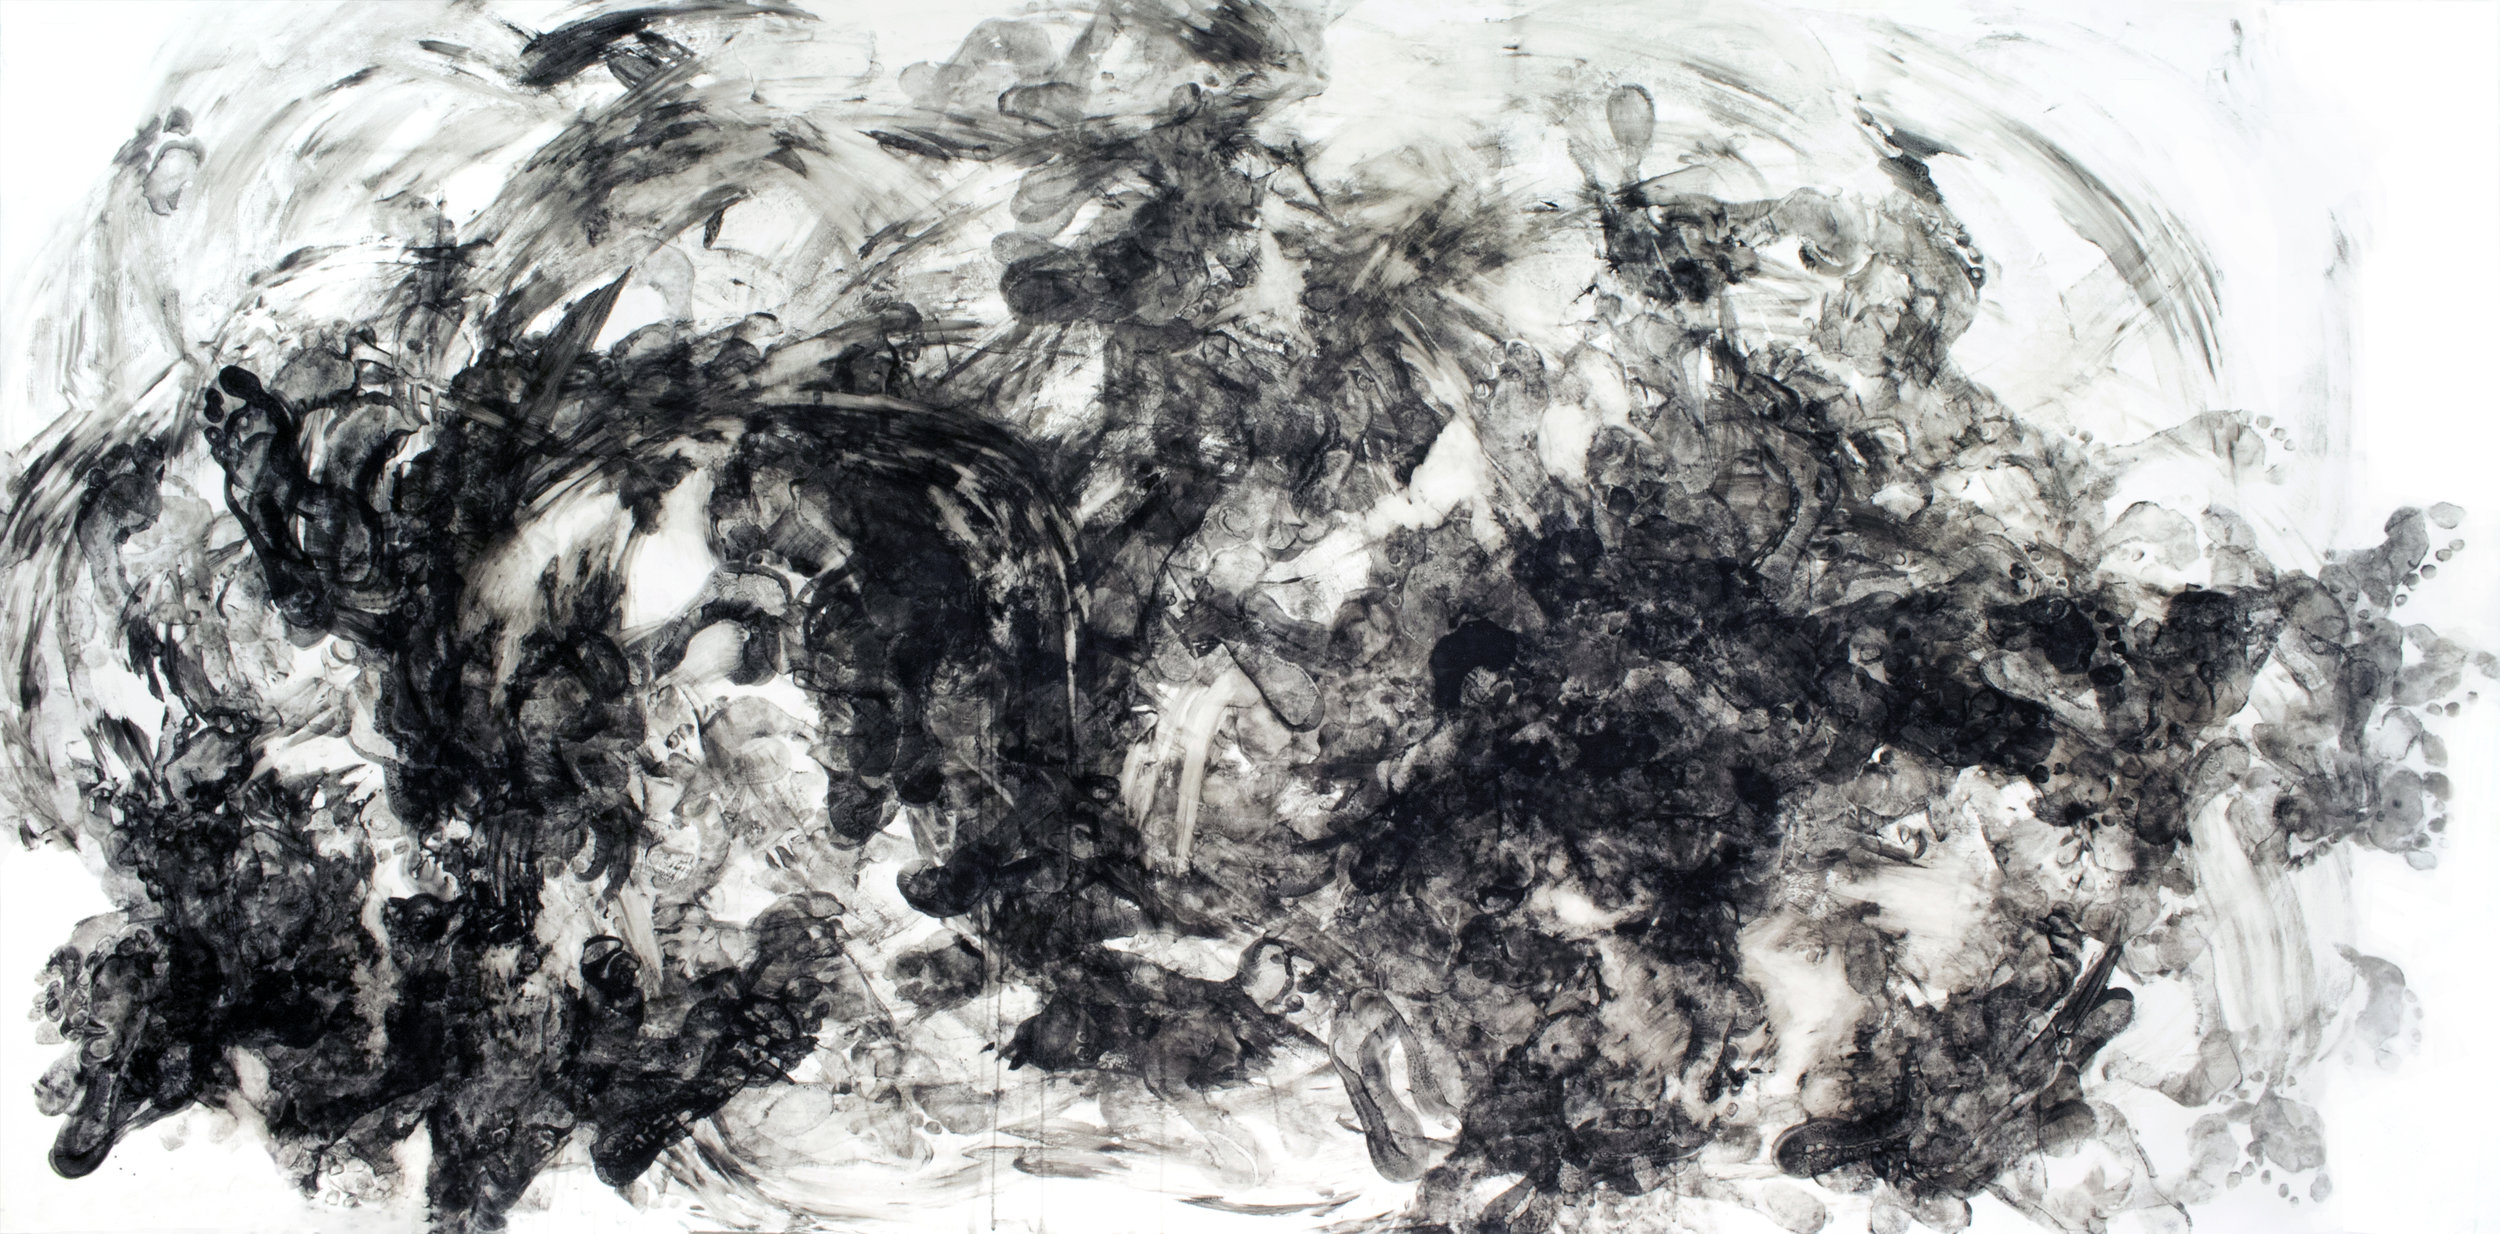 The Aftermath , 4x9ft, ink on paper